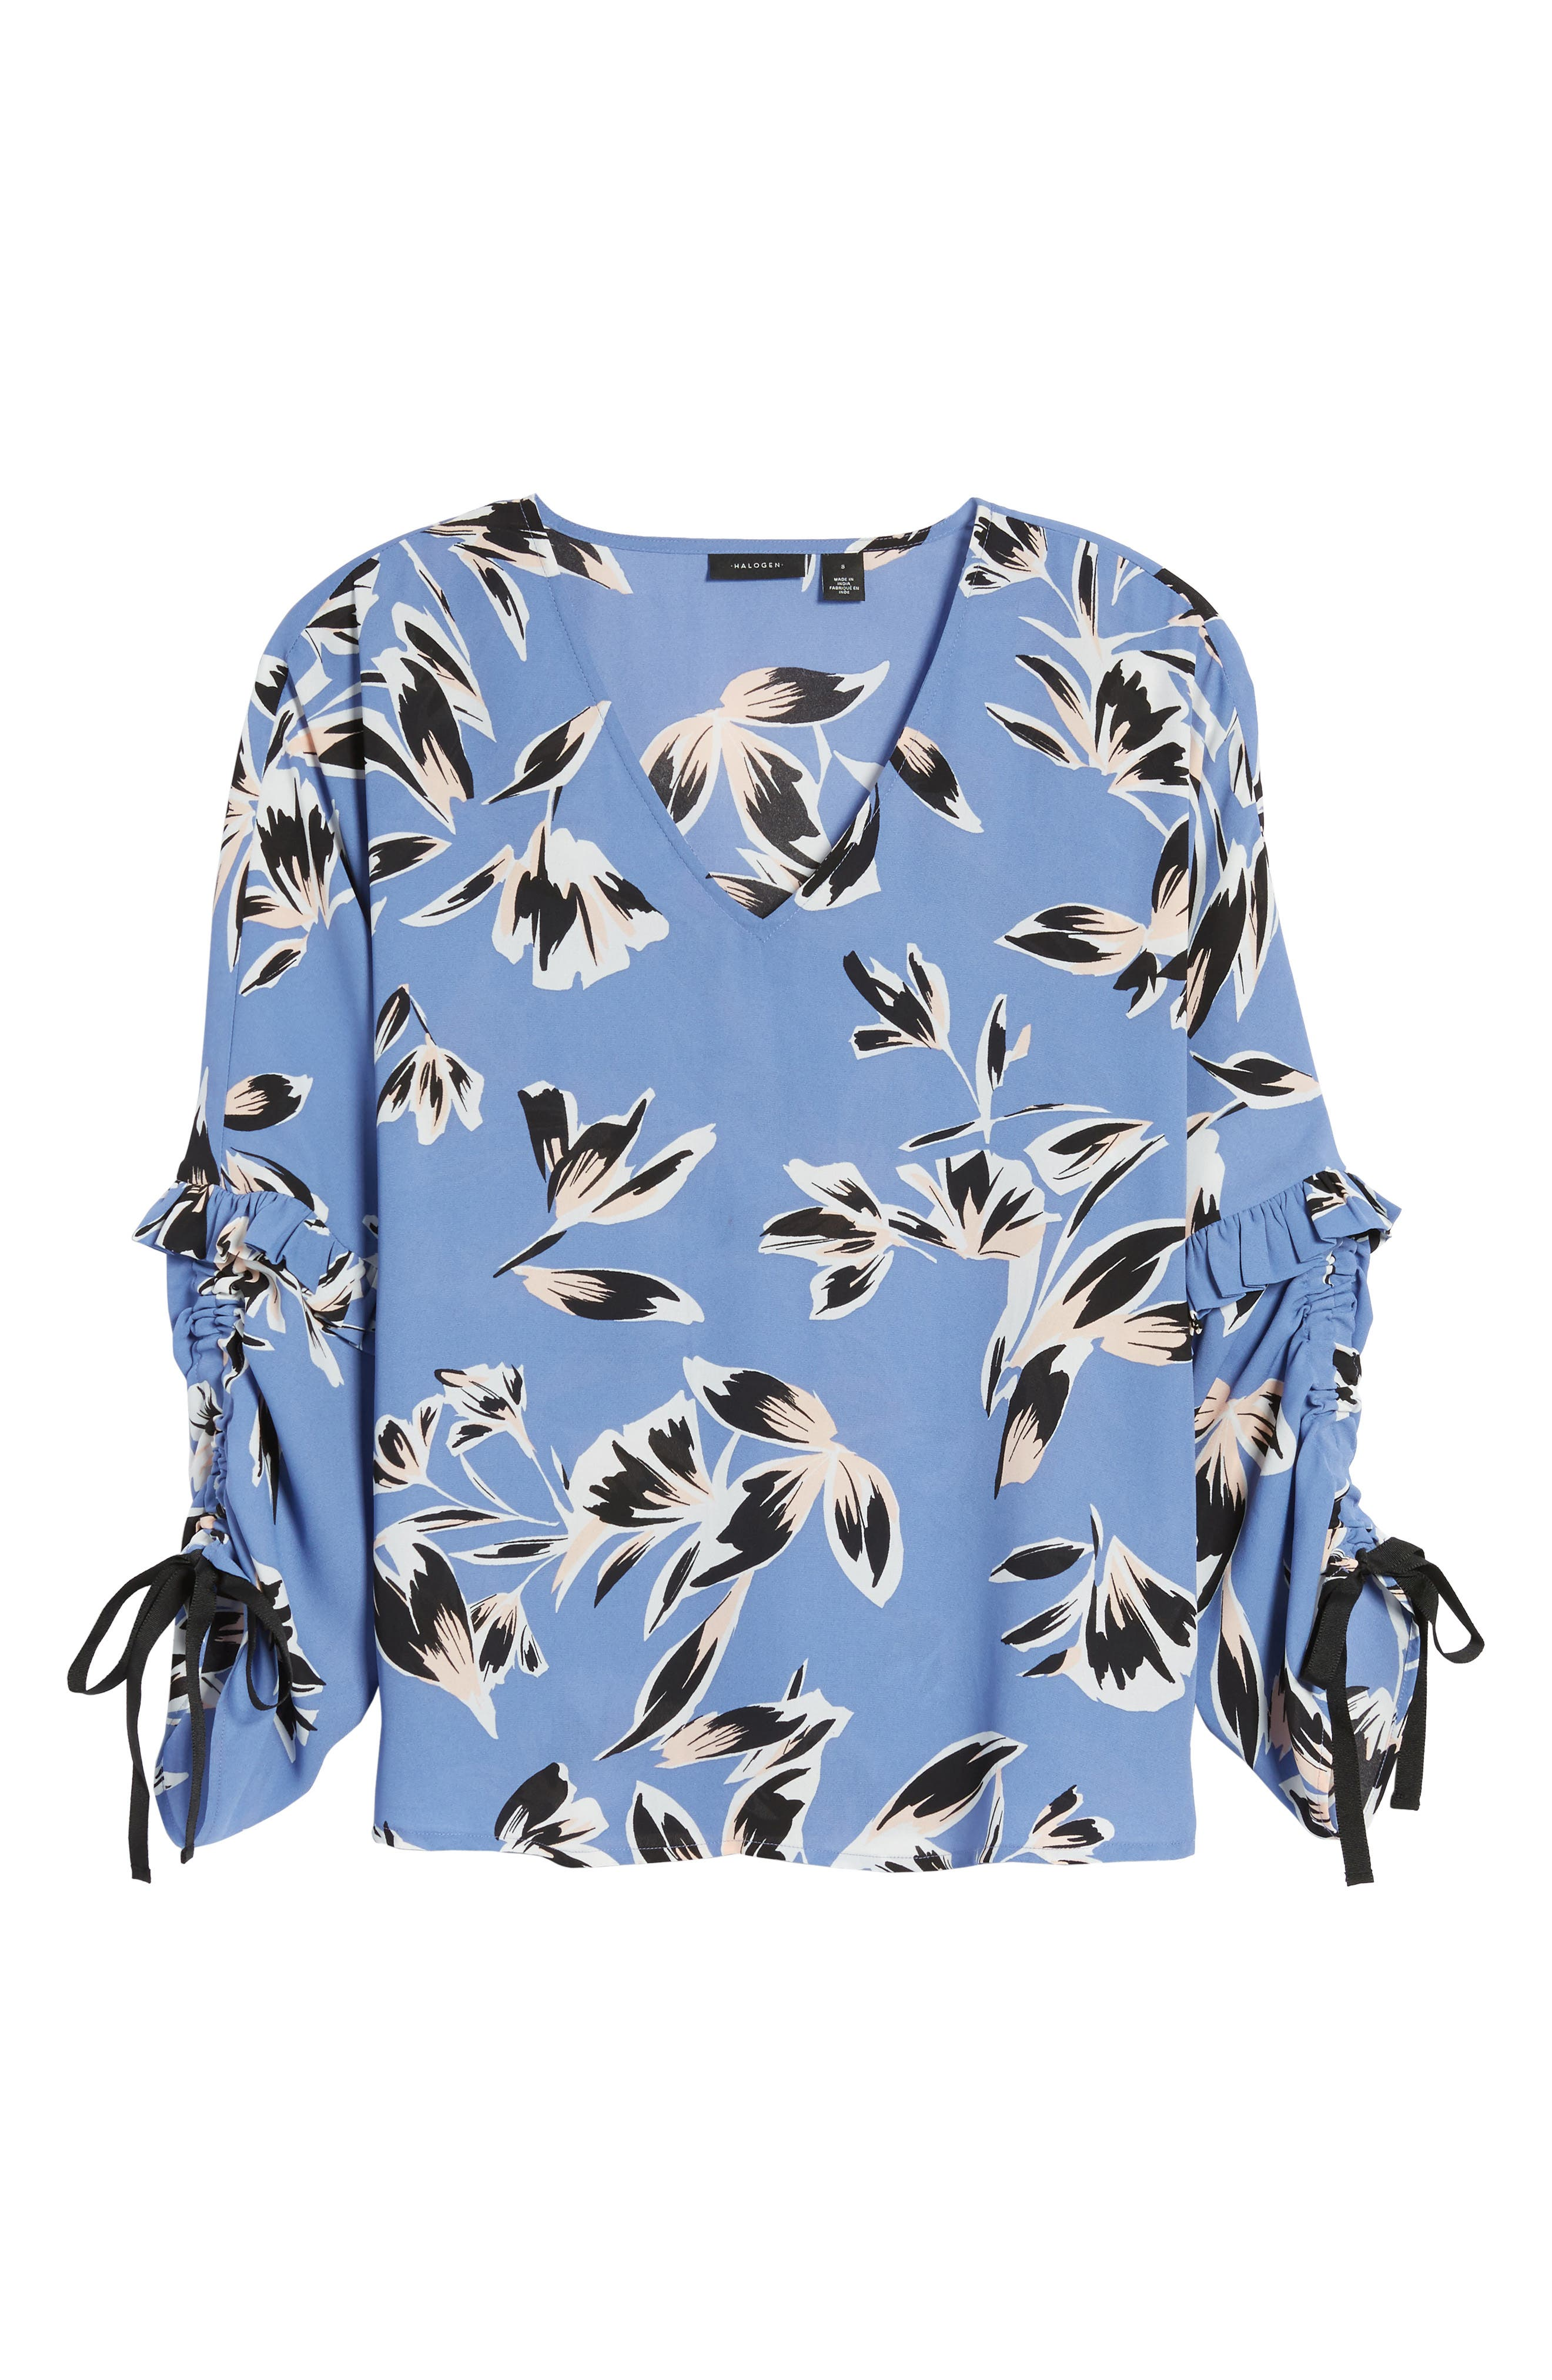 Ruched Tie Sleeve Top,                             Alternate thumbnail 6, color,                             Blue- Pink Sketch Floral